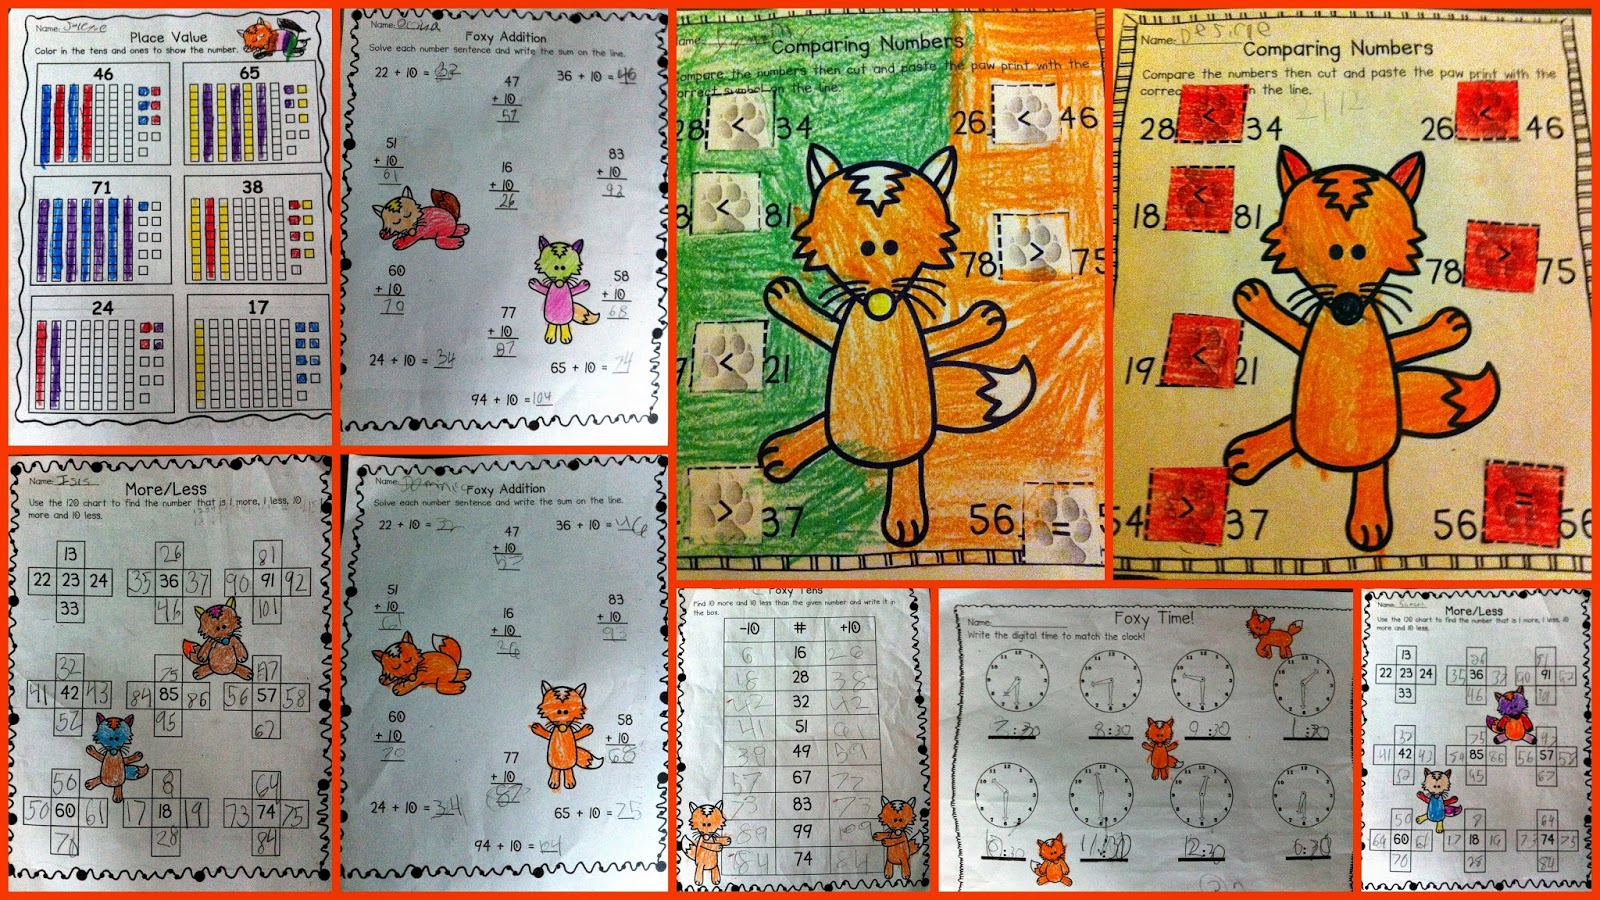 http://www.teacherspayteachers.com/Product/The-Fox-Says-Math-Common-Core-Aligned-Math-Activities-1173686